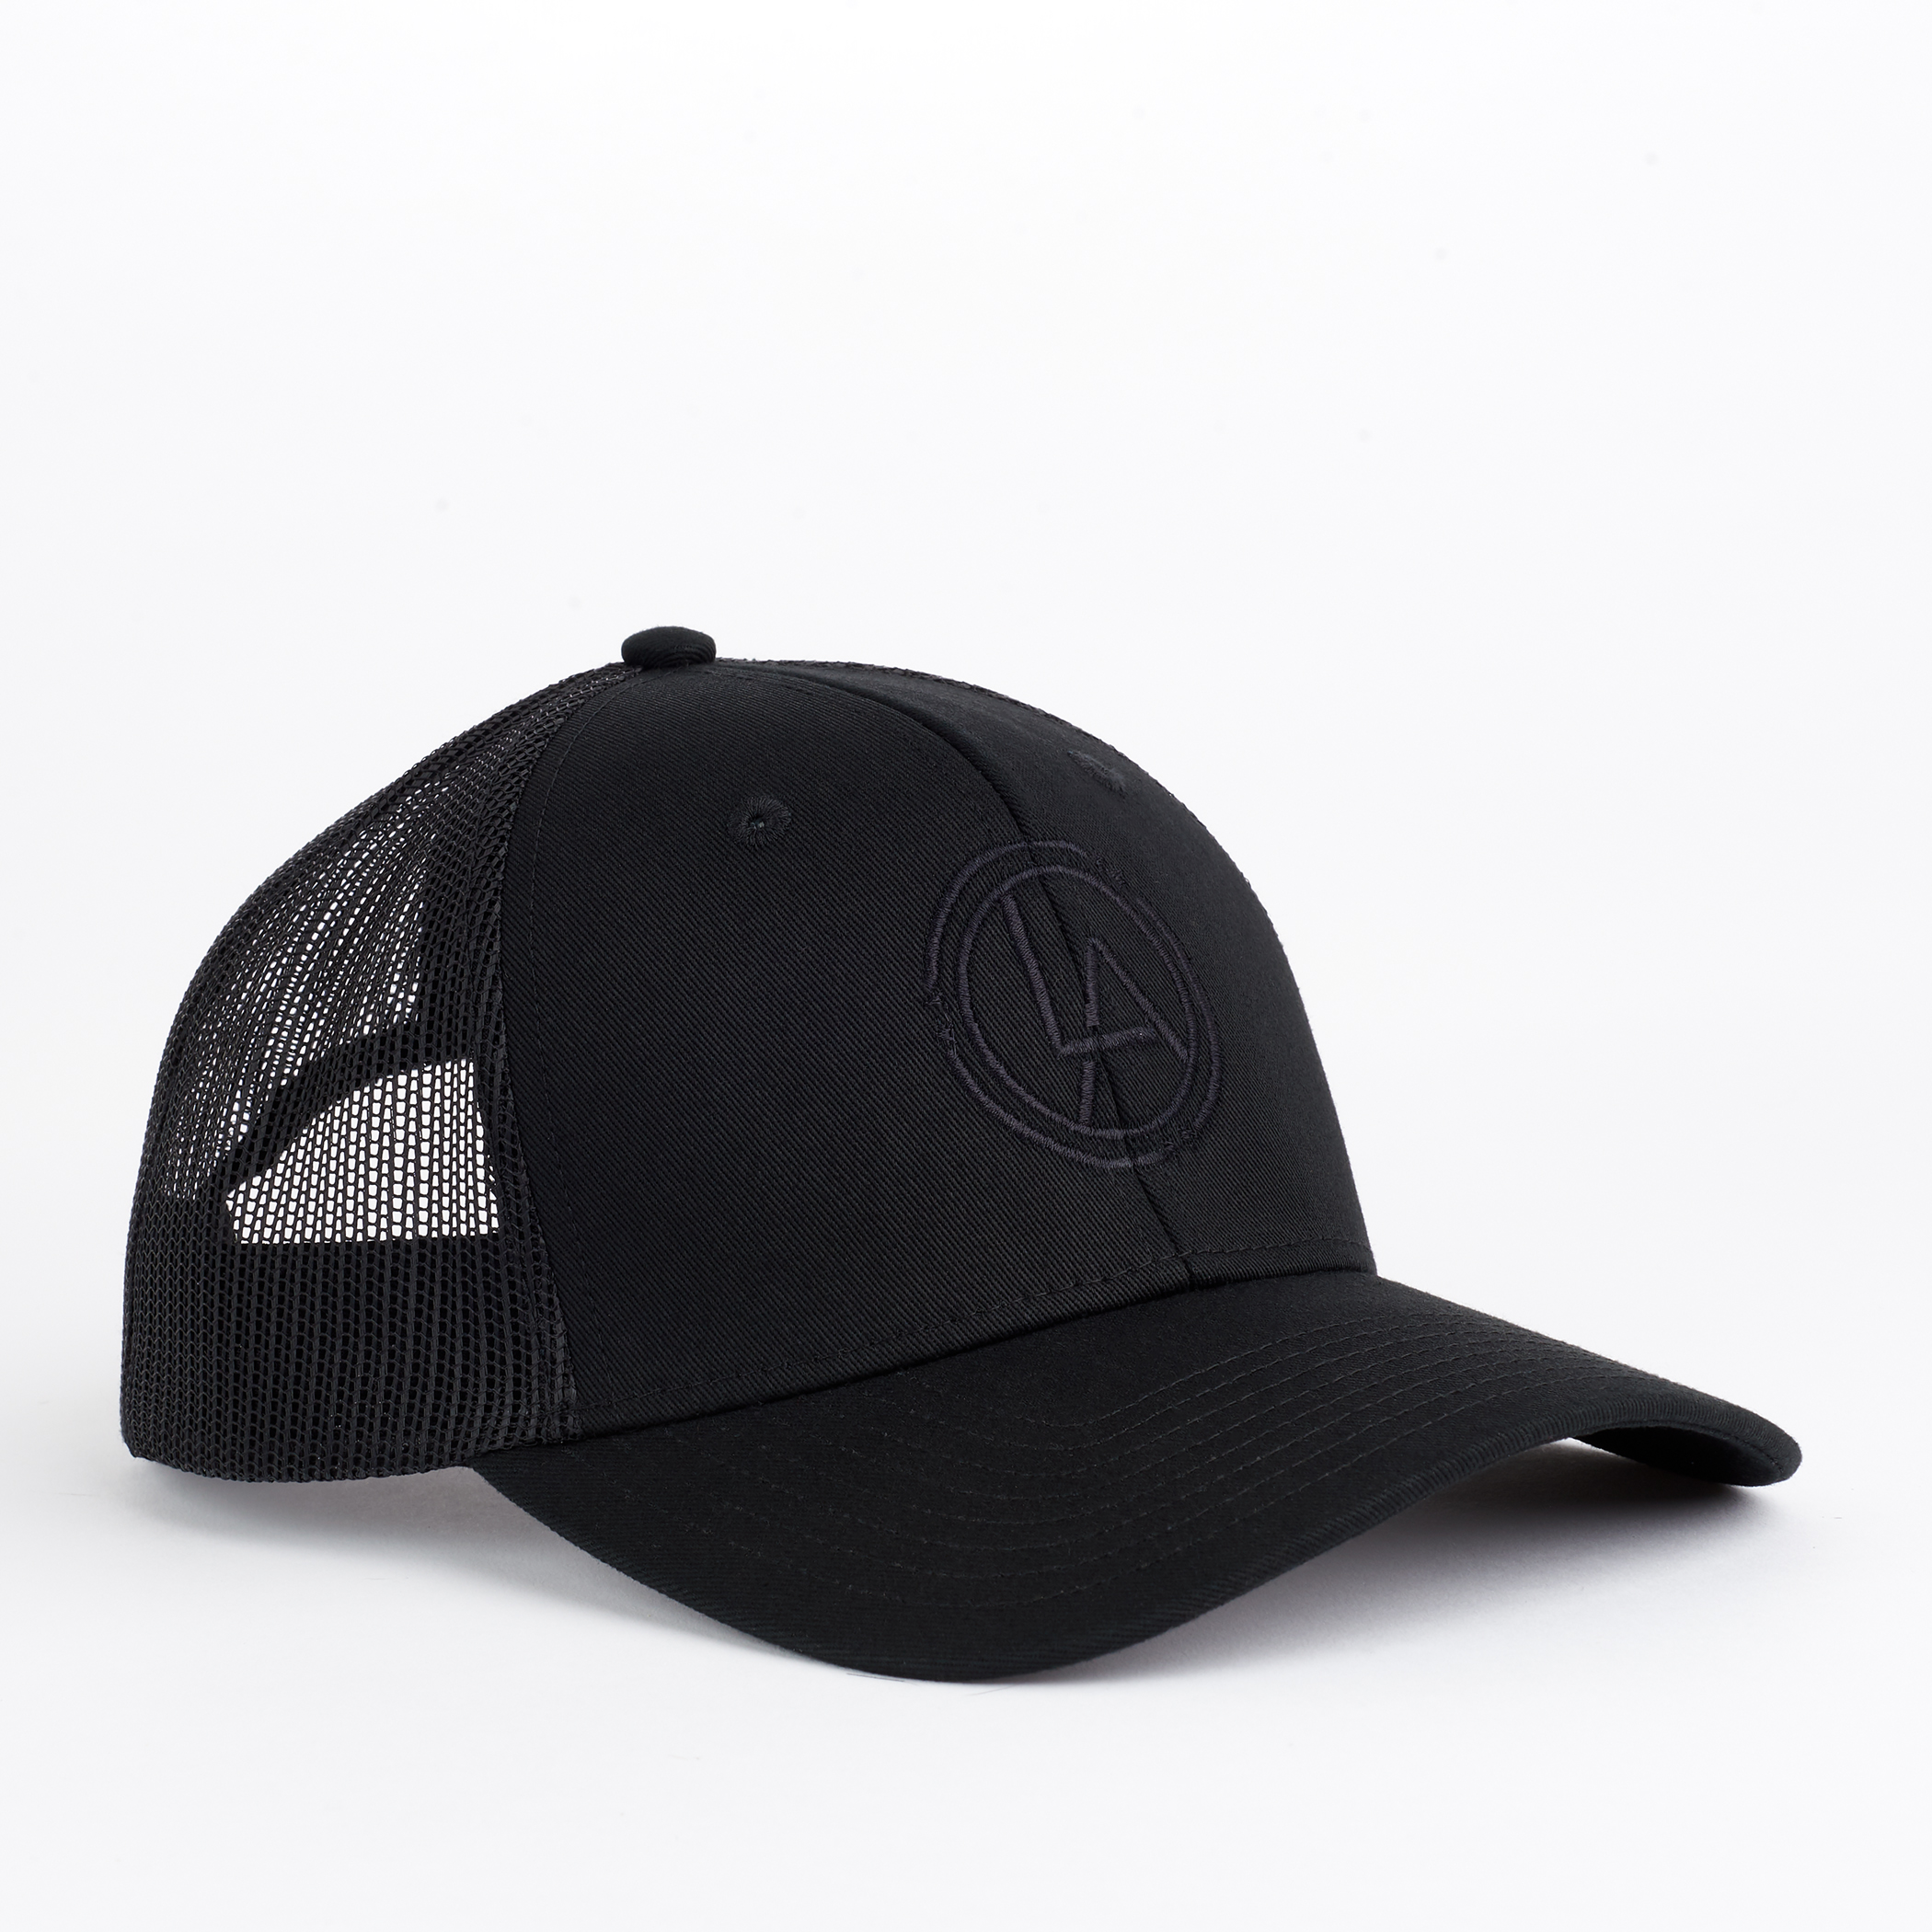 Lyn Avenue Trucker Hat - Bk.jpg